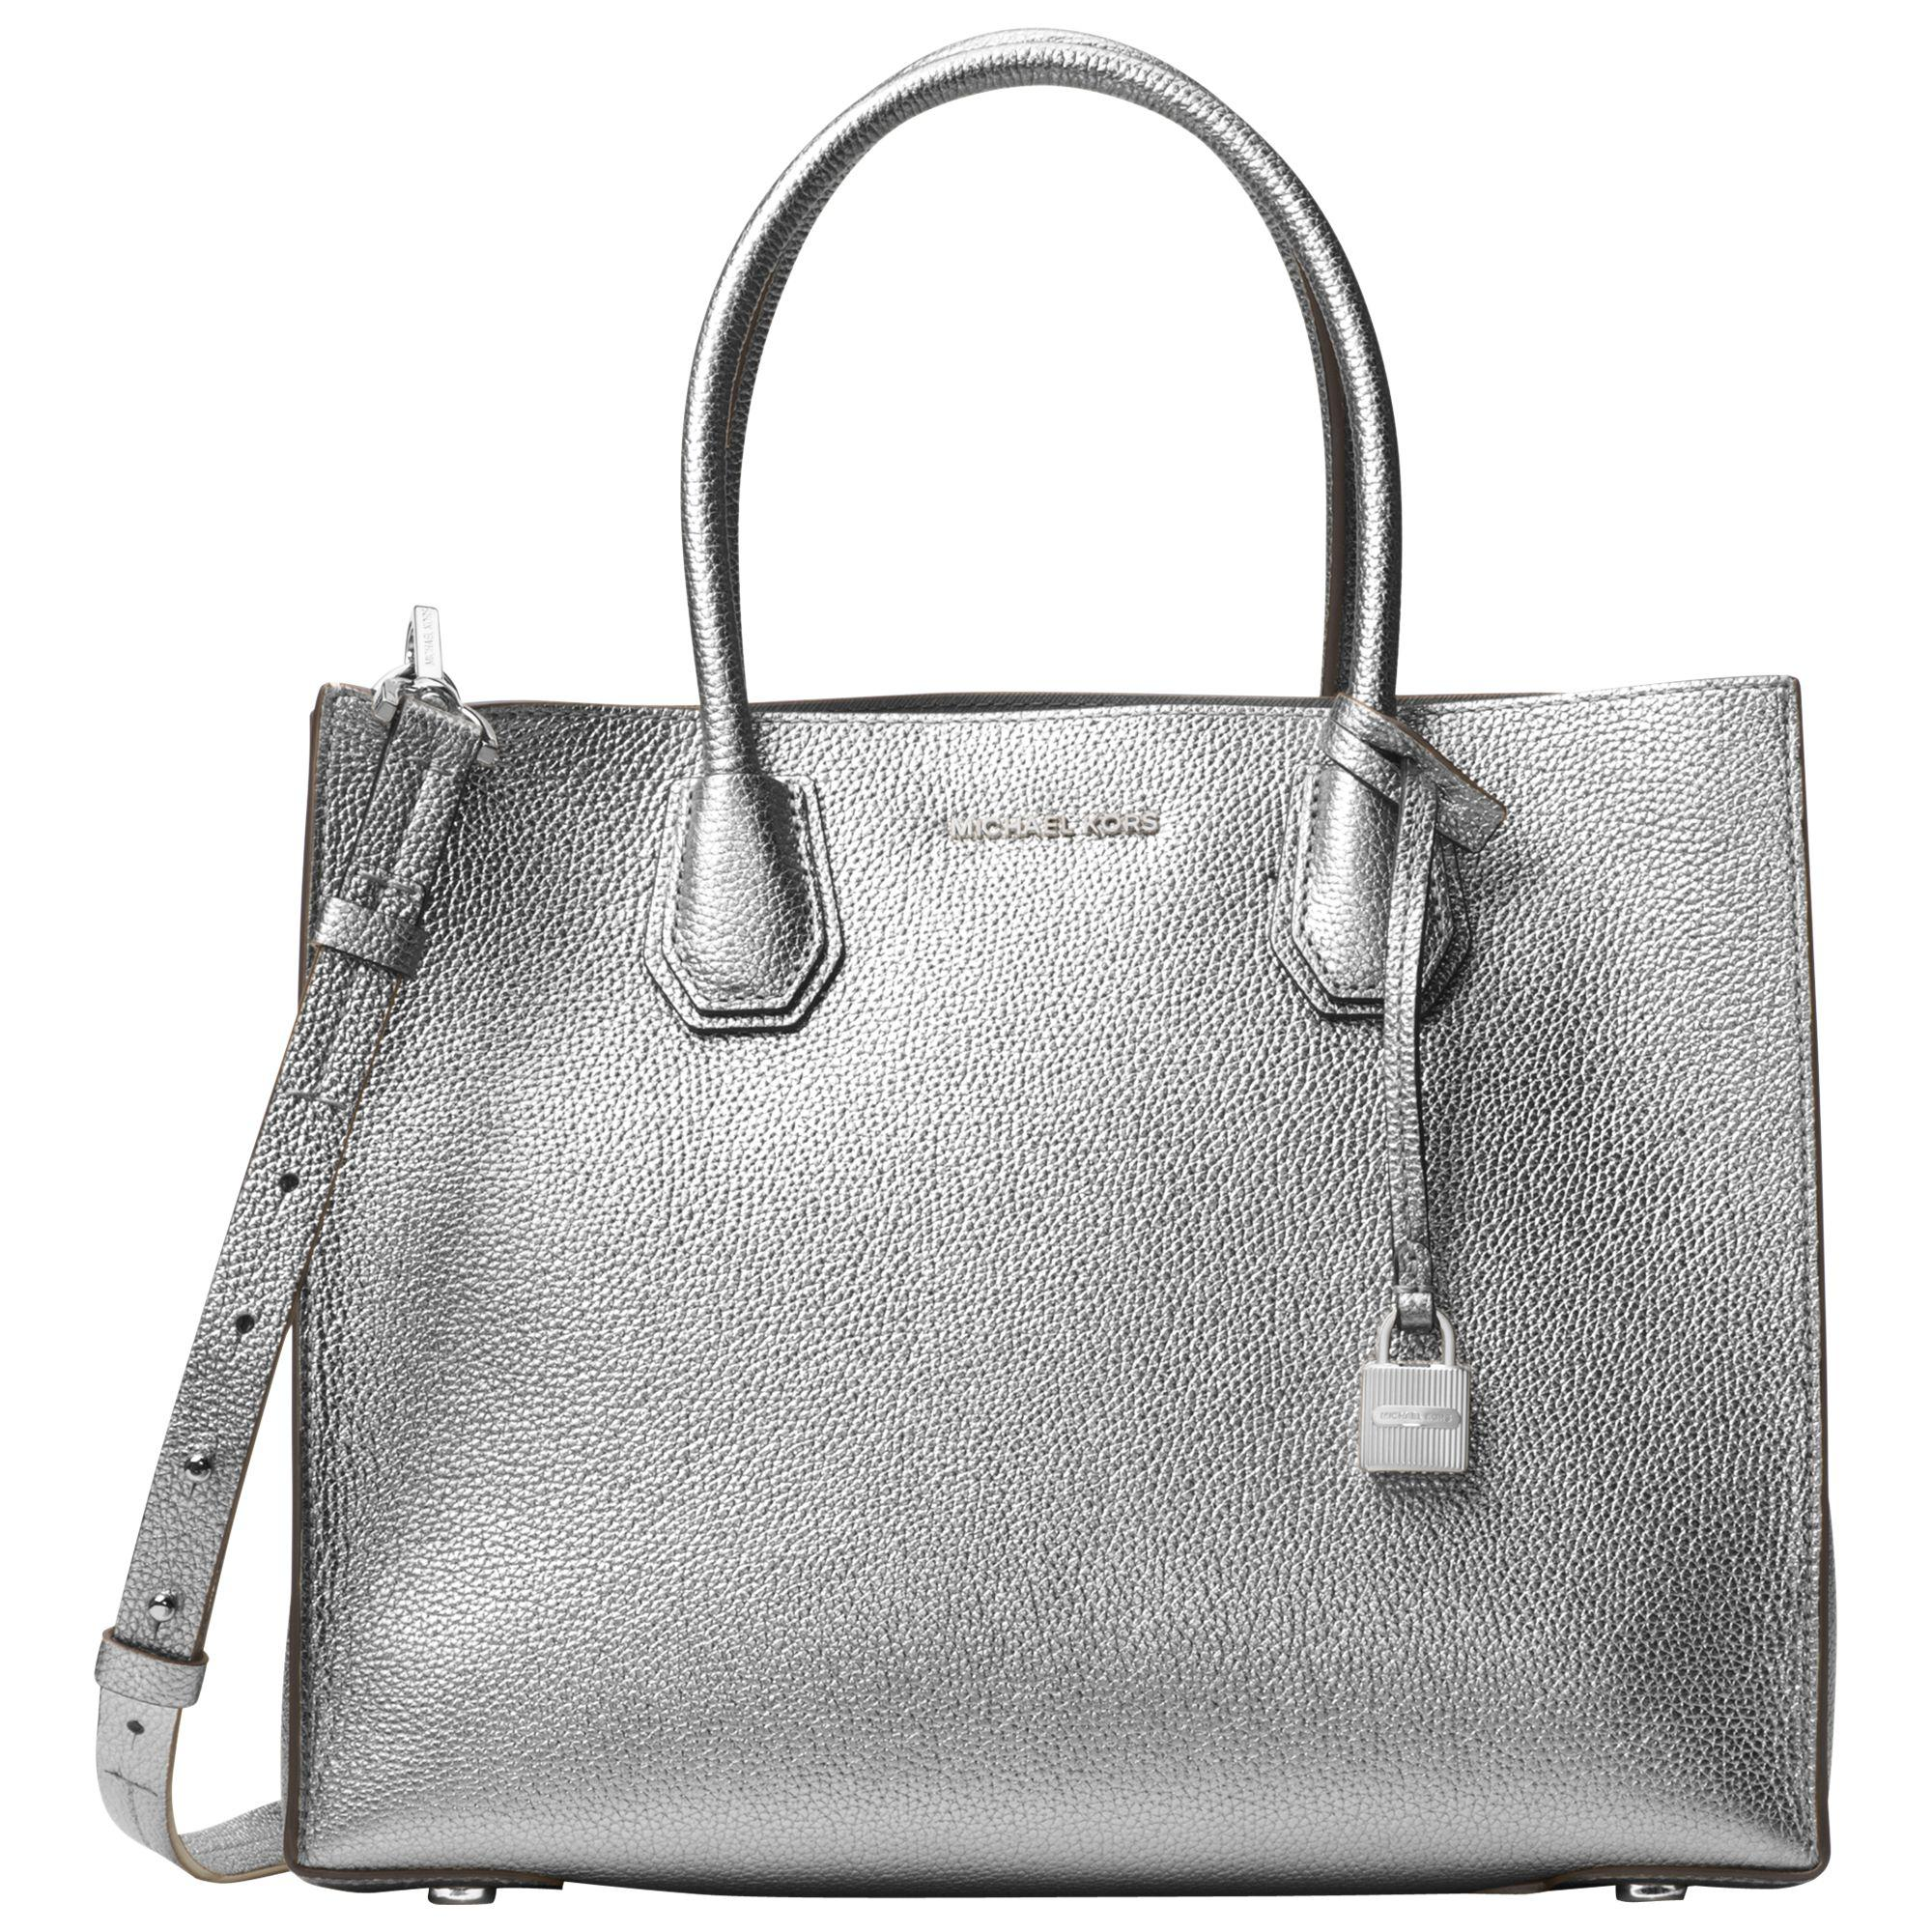 31042f327e2f Michael Kors Michael Mercer Large Leather Tote Bag in Metallic - Lyst